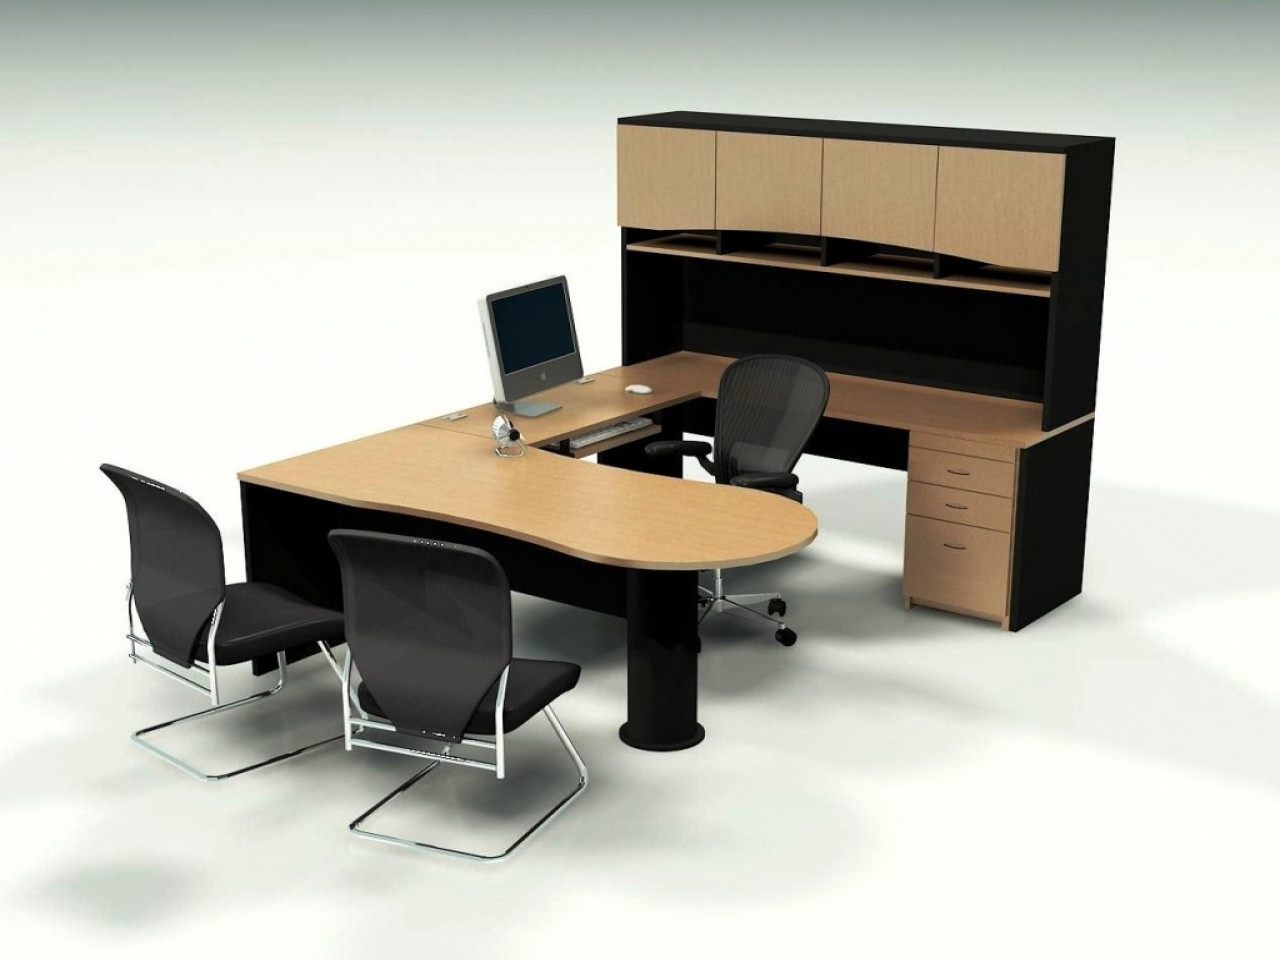 Best ideas about Small Office Furniture . Save or Pin Desks for small rooms office desks for small spaces Now.